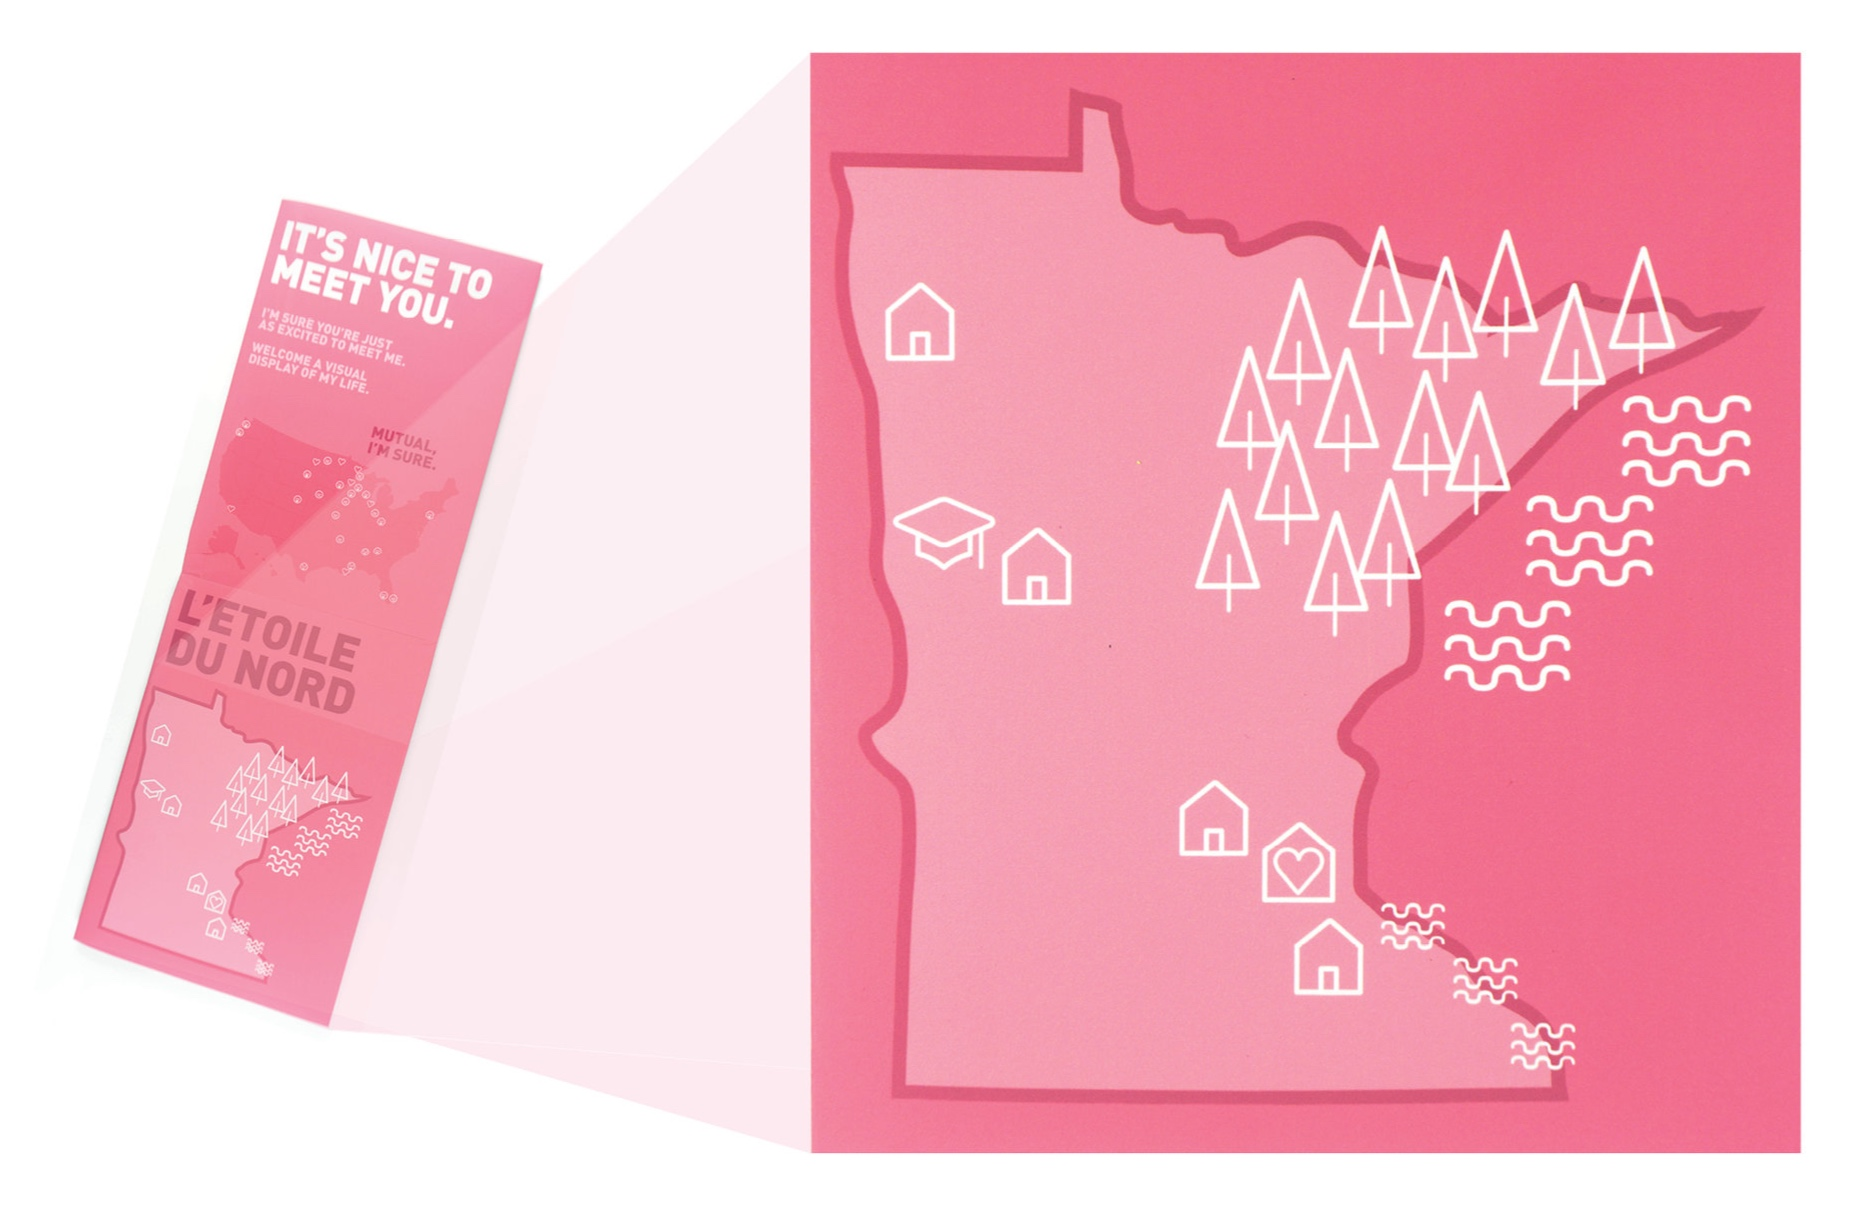 minnesota - Minnesota is large enough to tell a more specific narrative. Important places from my life are identified throughout the state, like the North Woods, where I went to college, where my family lives, and where I have called home.